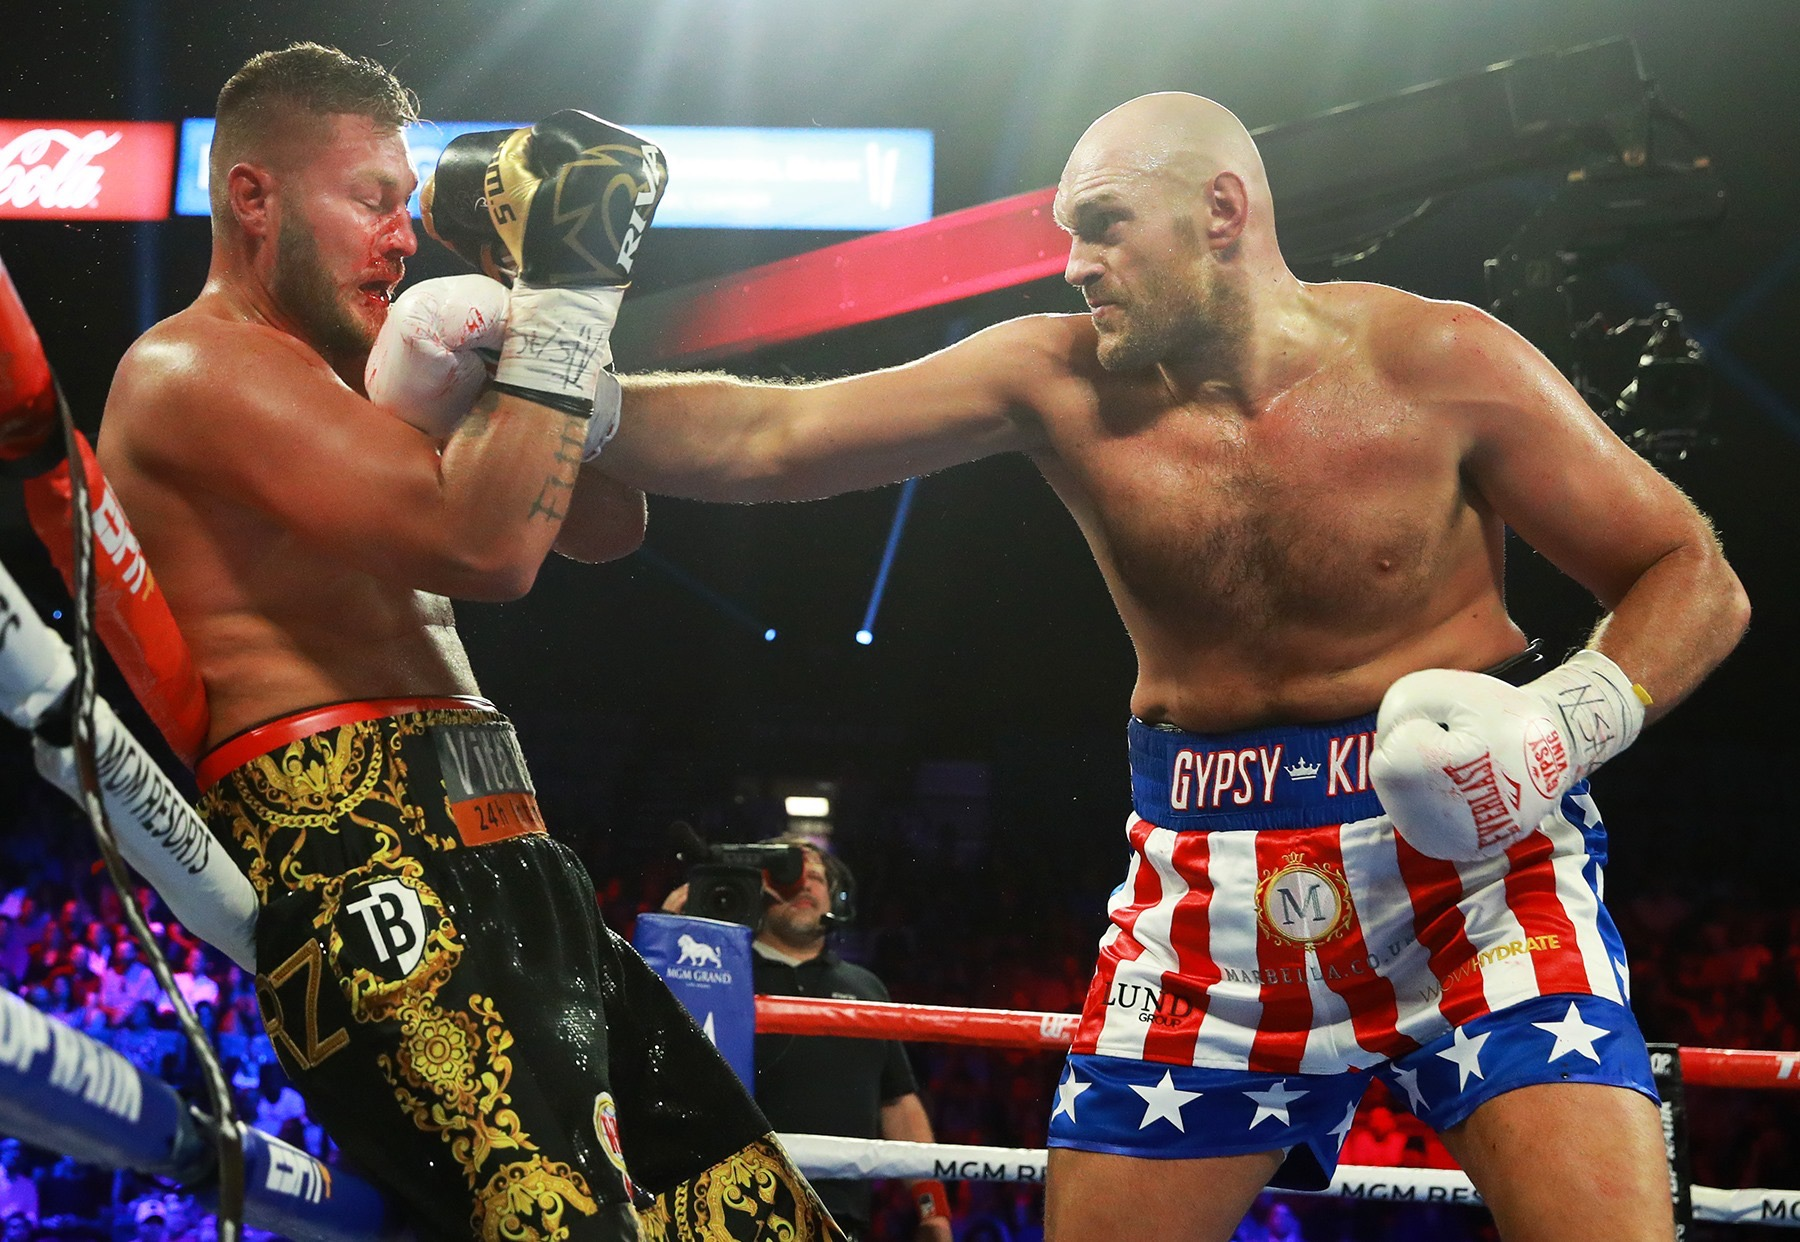 A4ECD32C 5989 4C27 BFDC 5A3561C23B40 - What's Next for Tyson Fury?